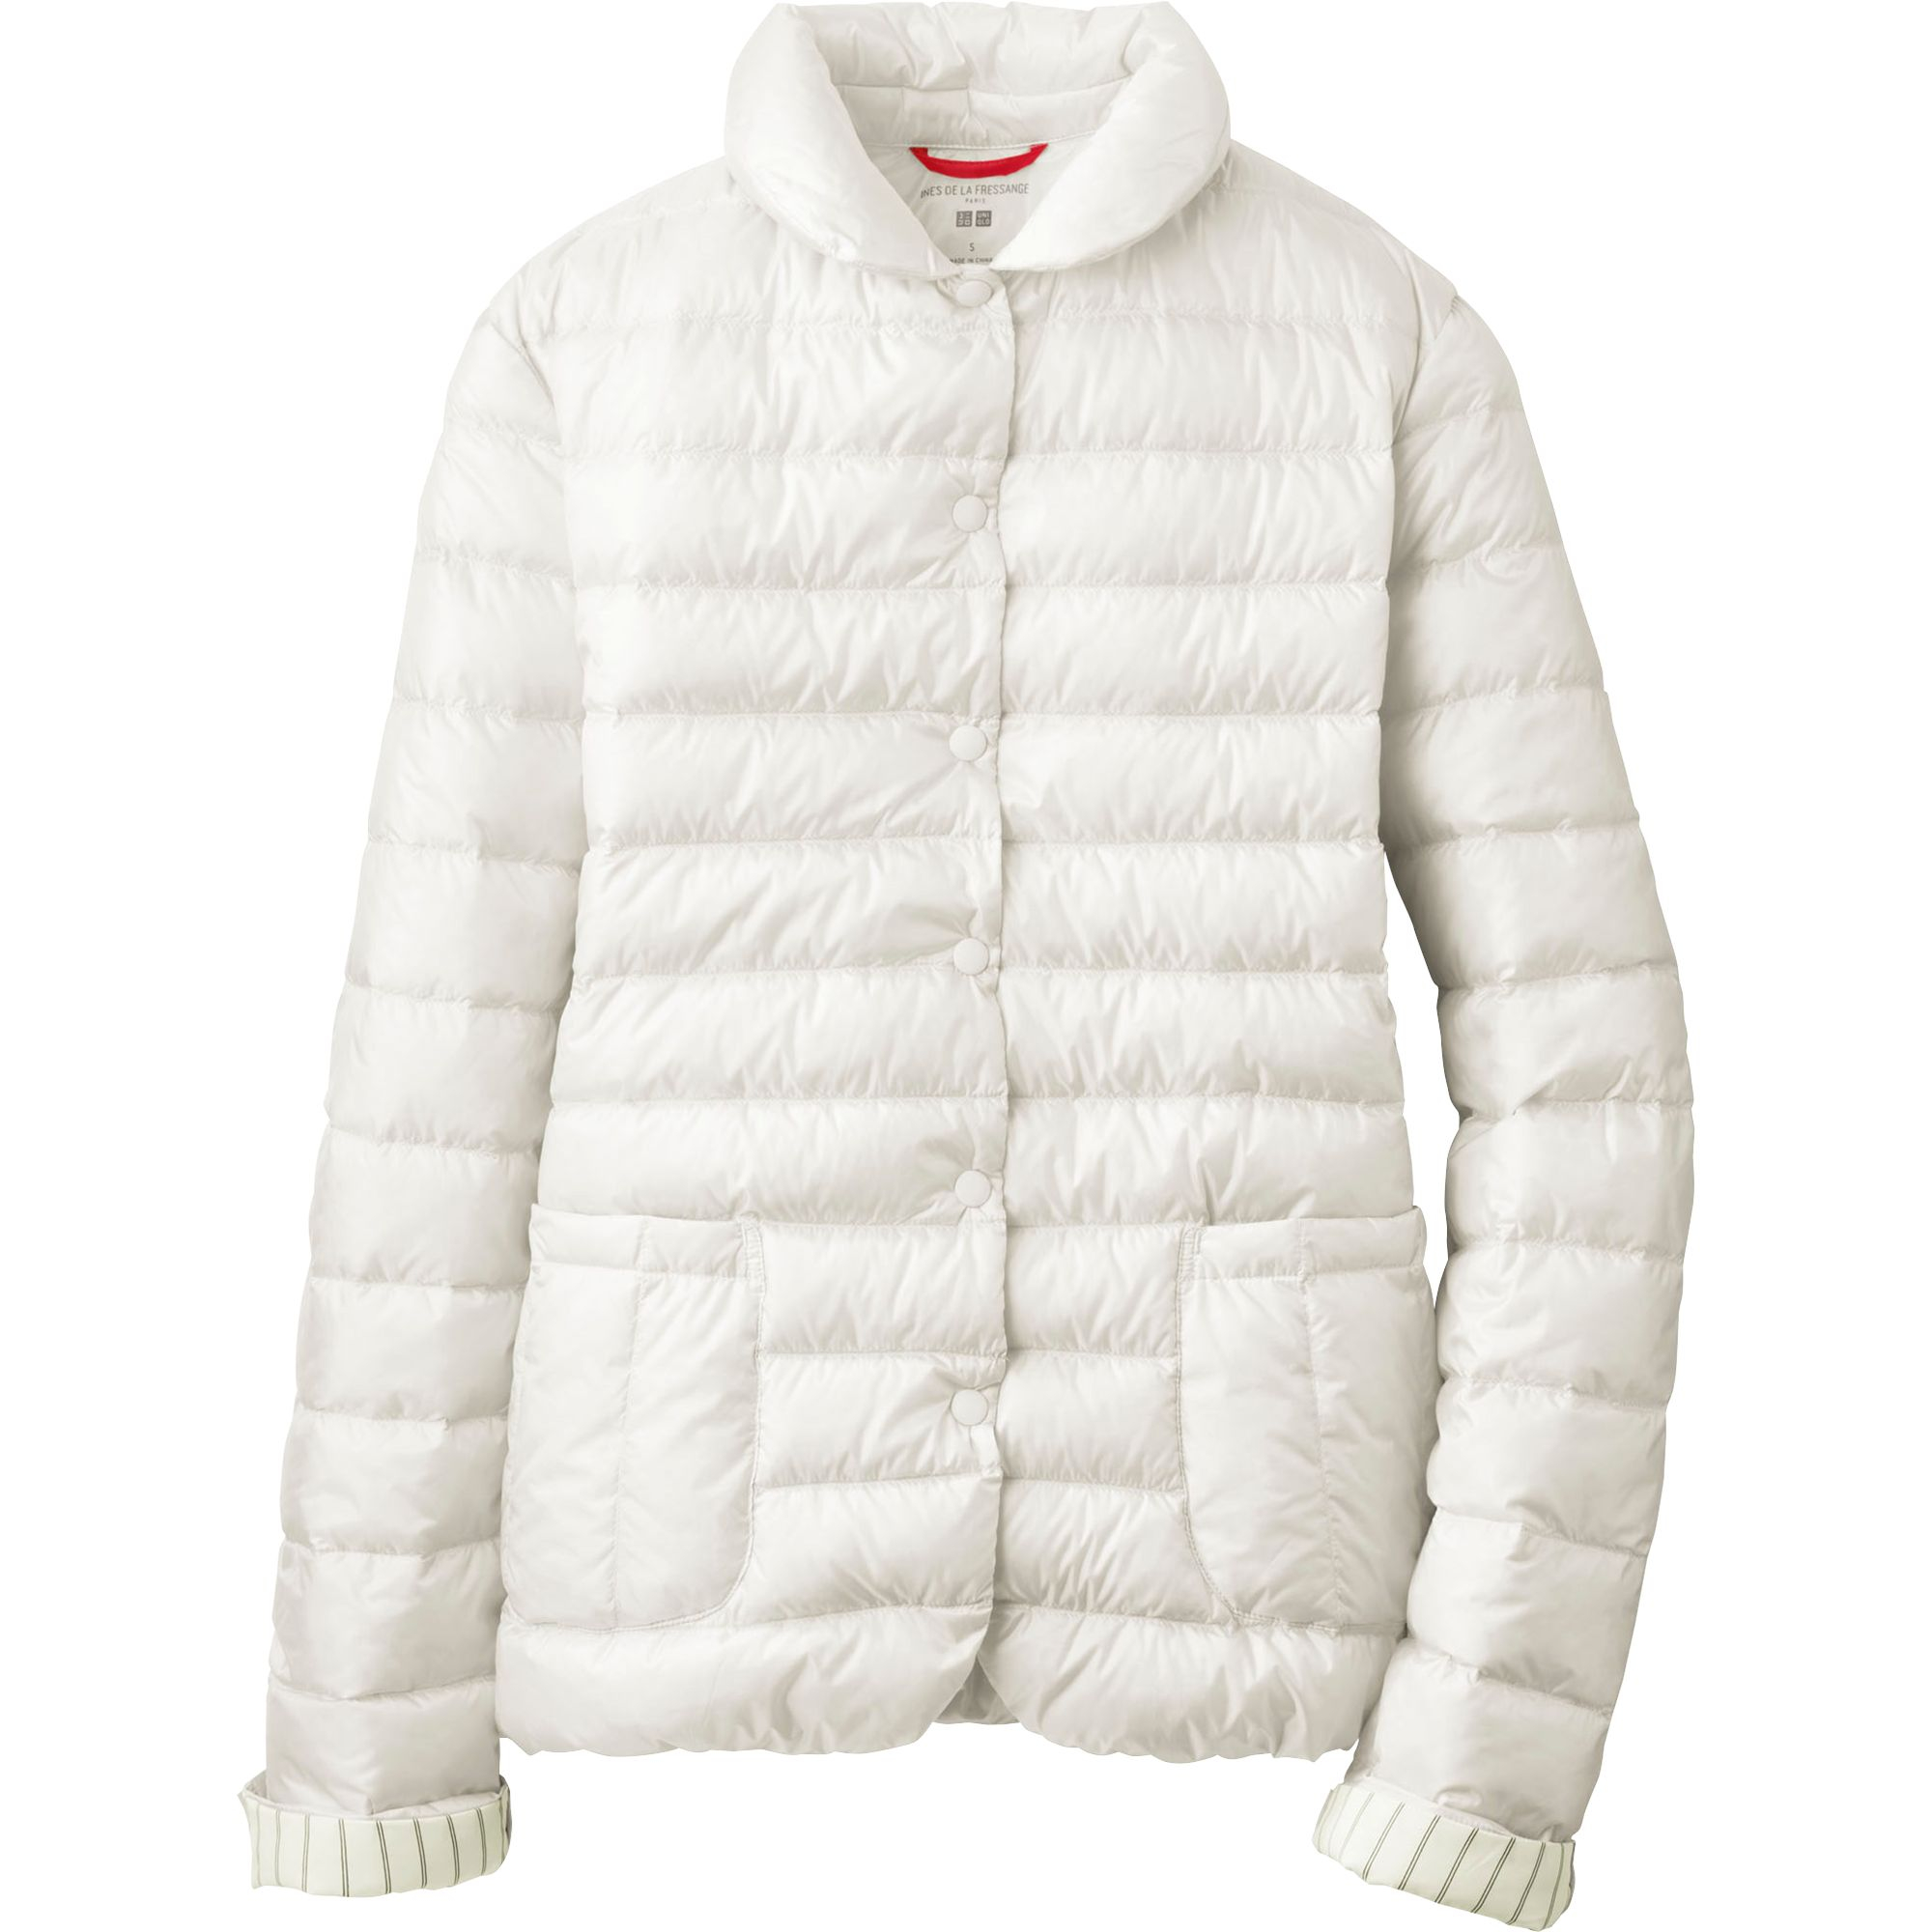 uniqlo women idlf ultra light down compact jacket in white off white. Black Bedroom Furniture Sets. Home Design Ideas